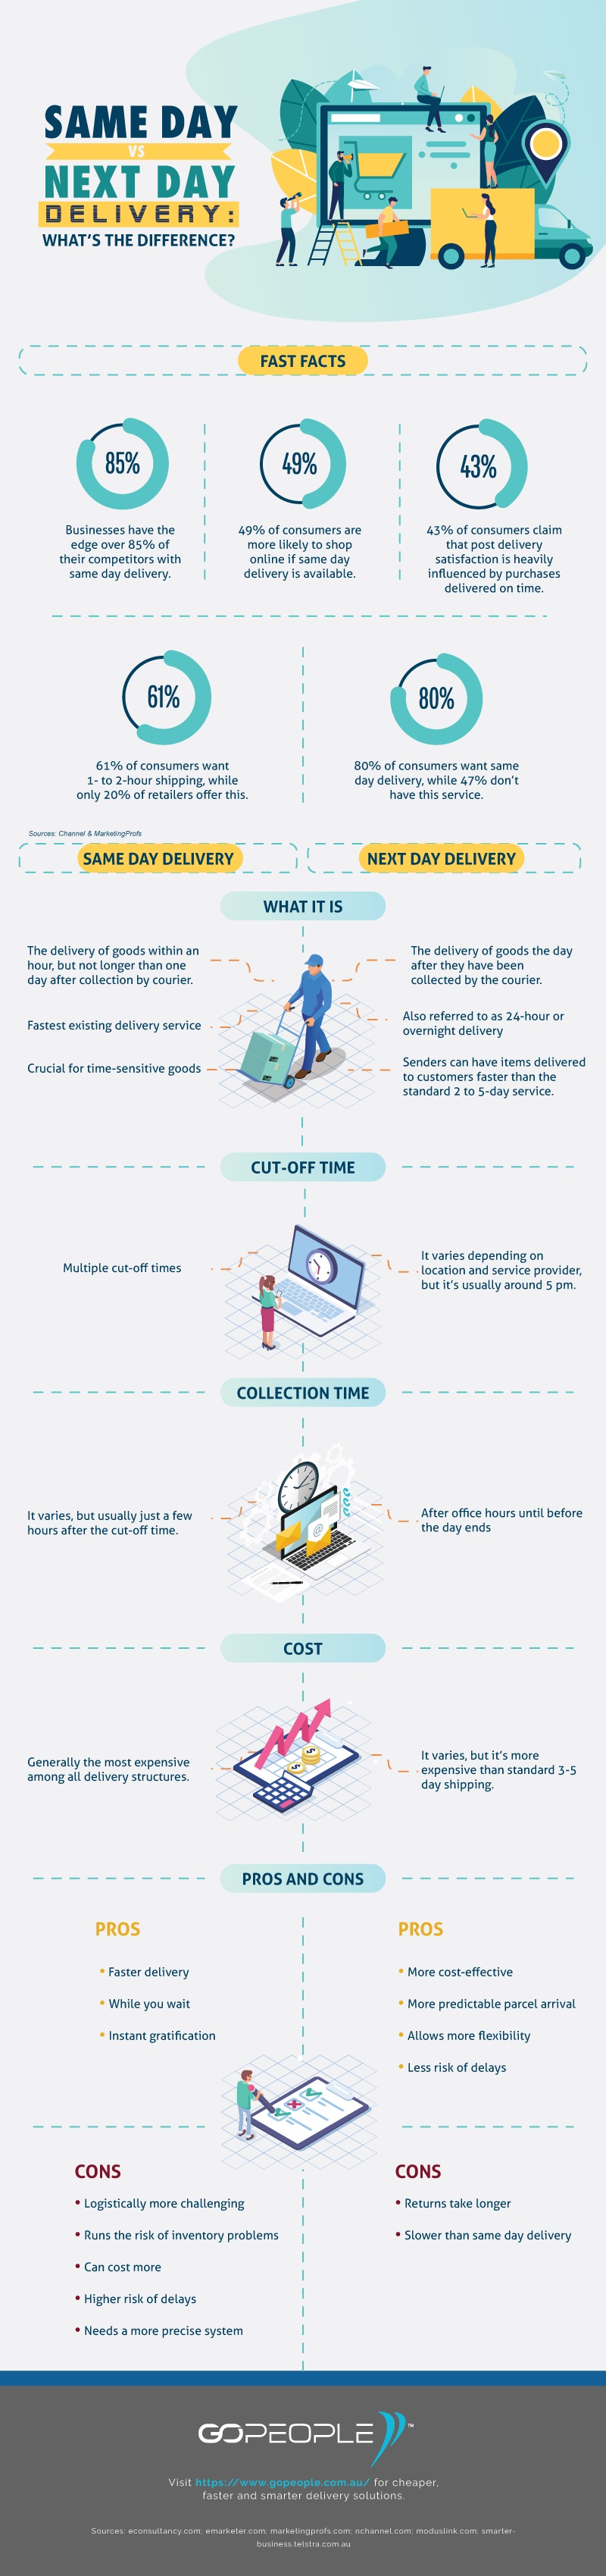 Same Day Delivery vs Next Day: What's the Difference? Infographic